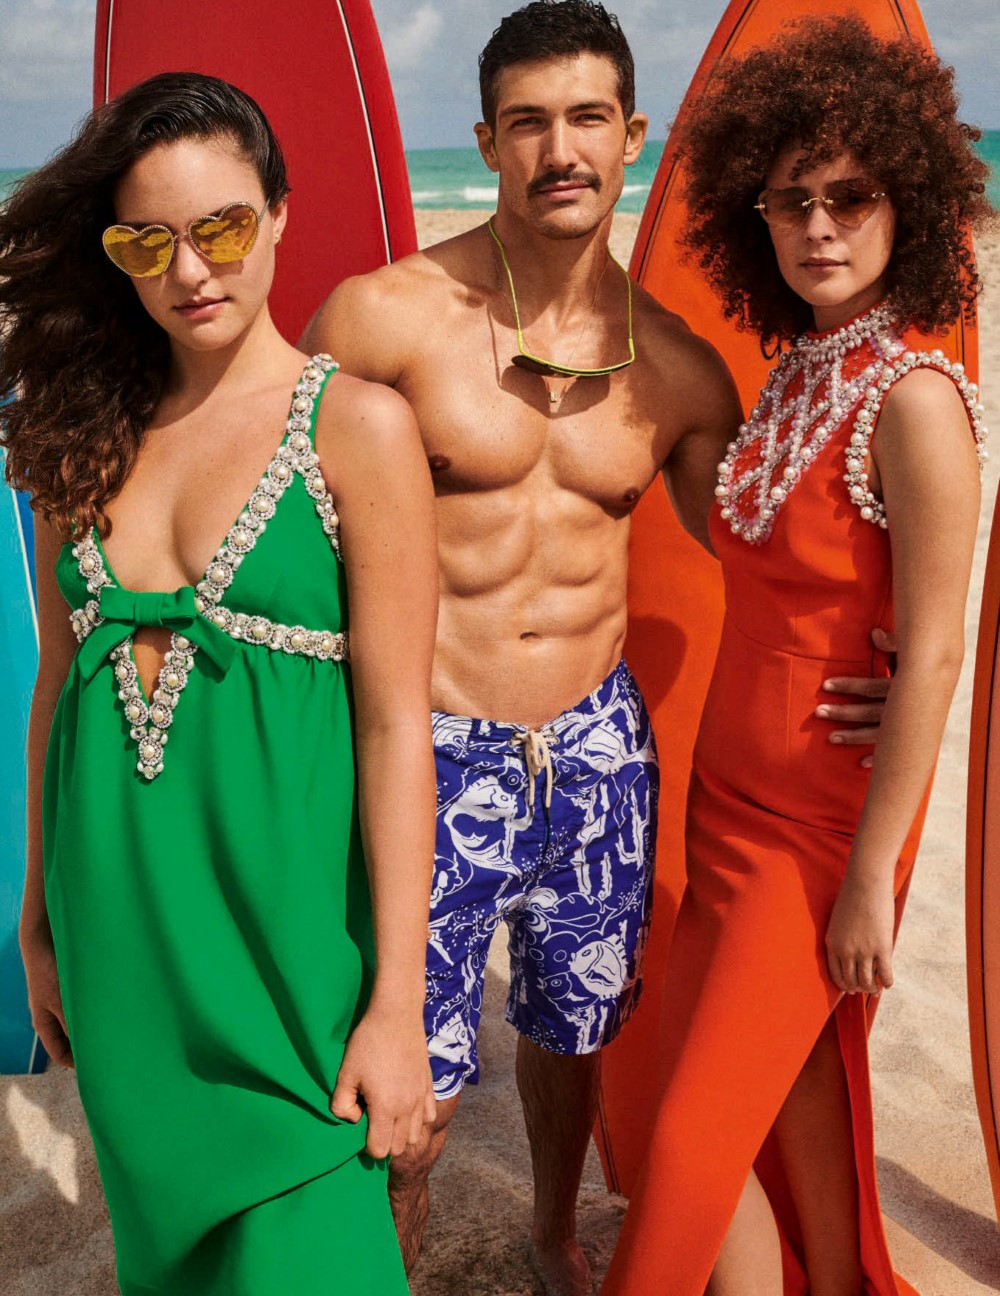 Andrés Velencoso Segura, Karolina Kurkova and others by Giampaolo Sgura for Vogue Germany June 2020